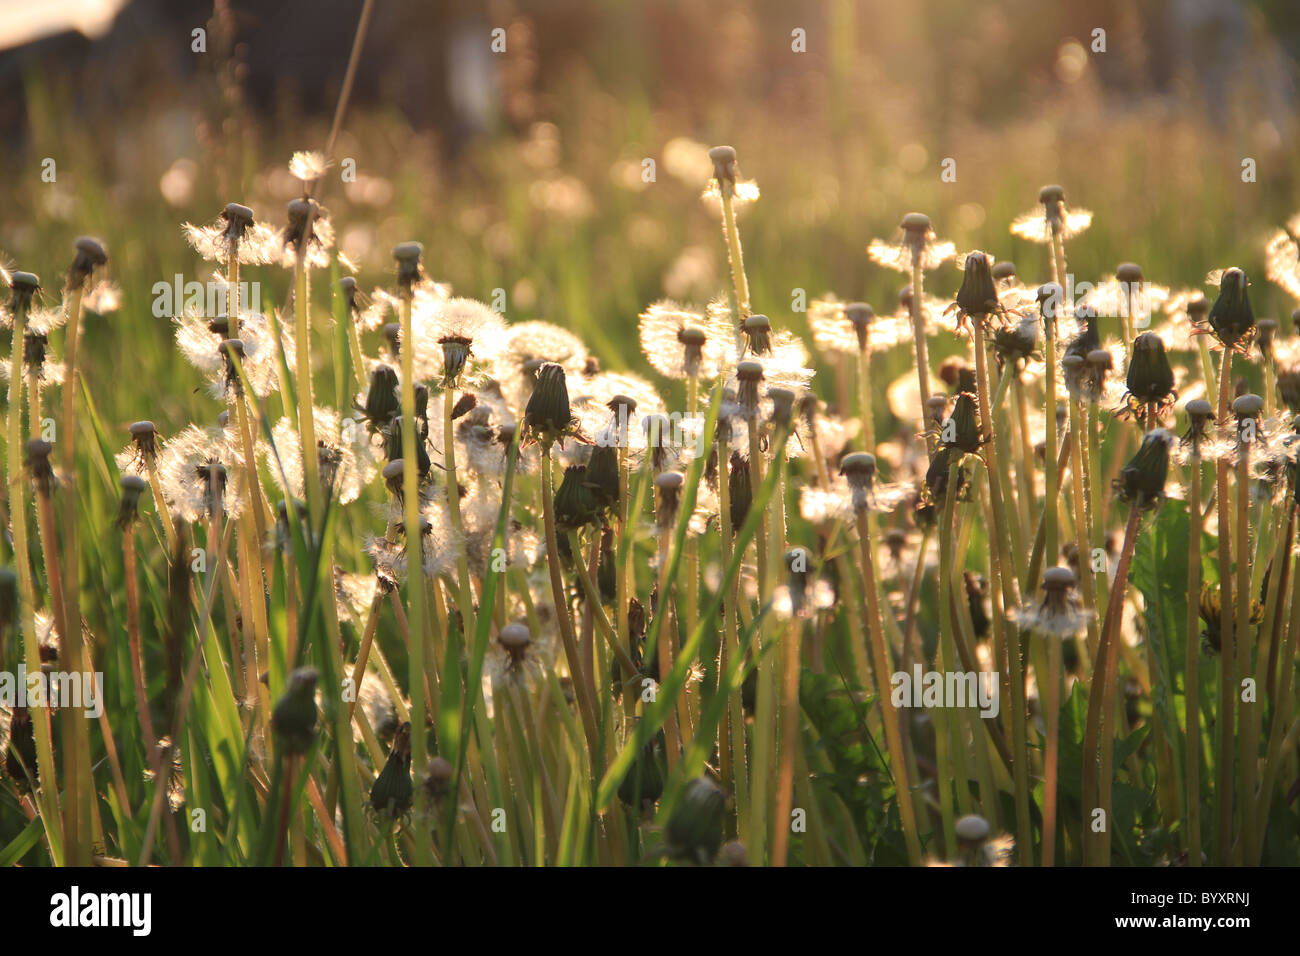 Dandelions lite by the sun while blowing in the wind. - Stock Image